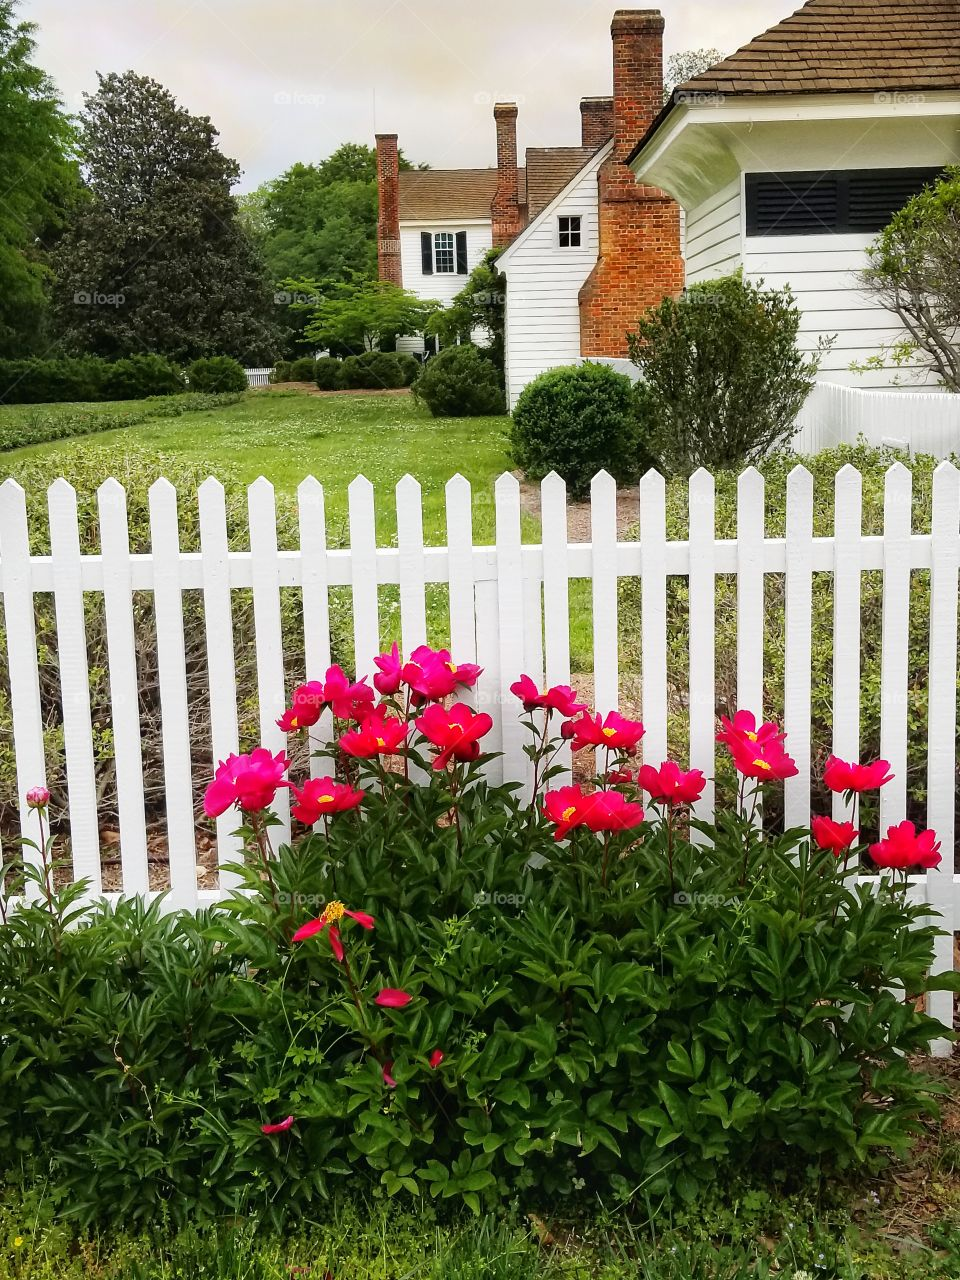 Flowers and a Fence